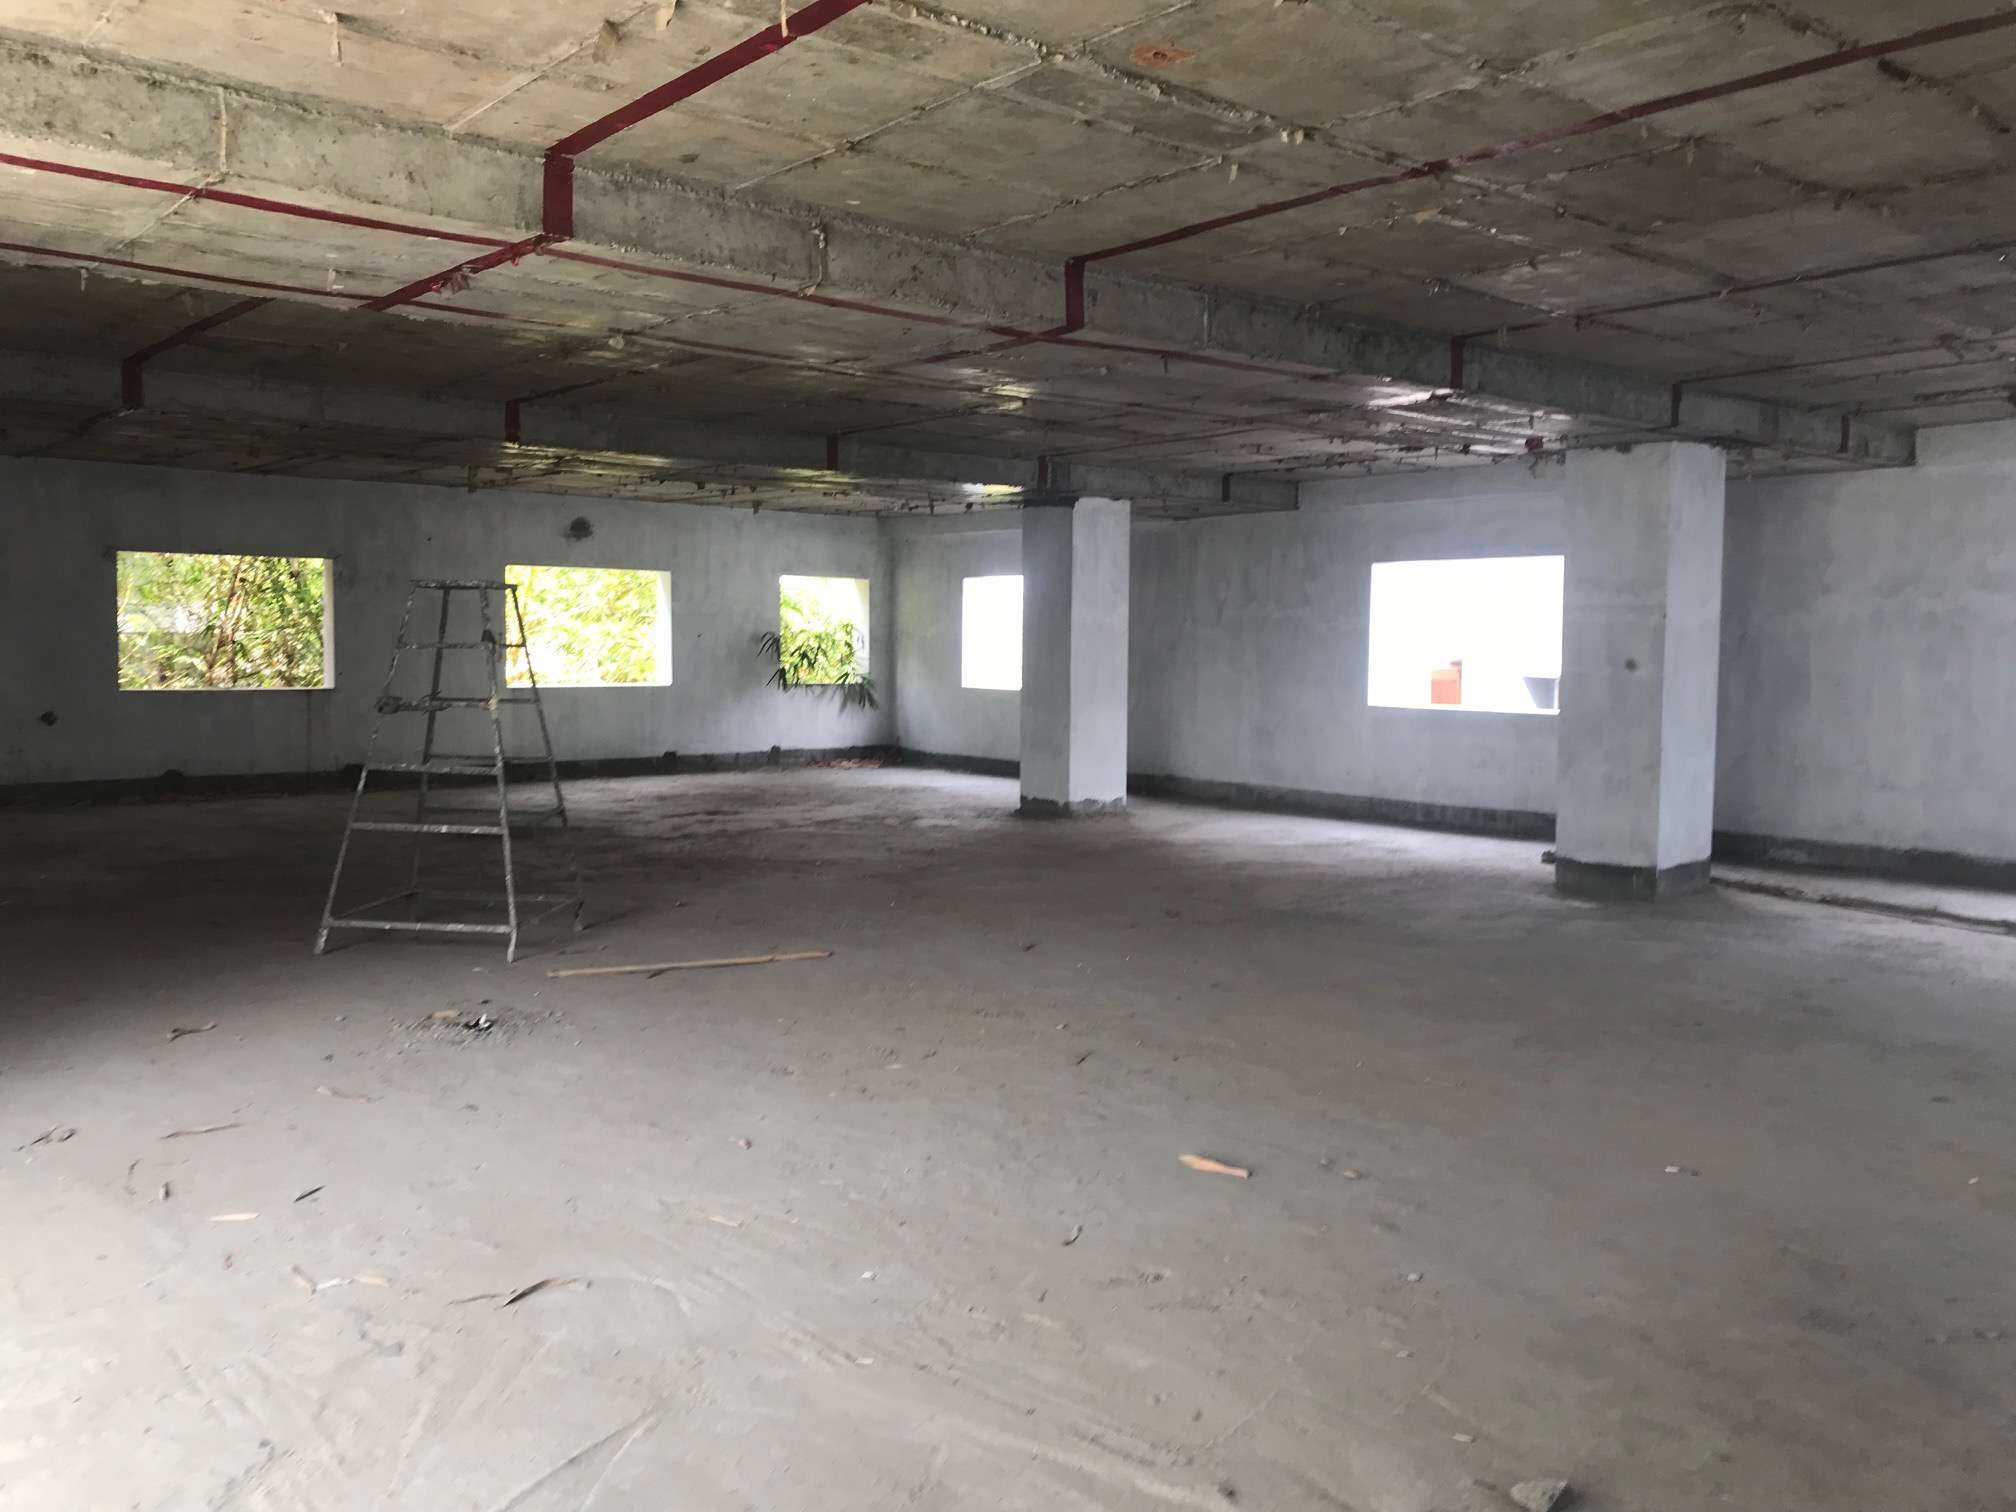 Commercial Space for Lease / Rent in Banjara Hills Hyderabad